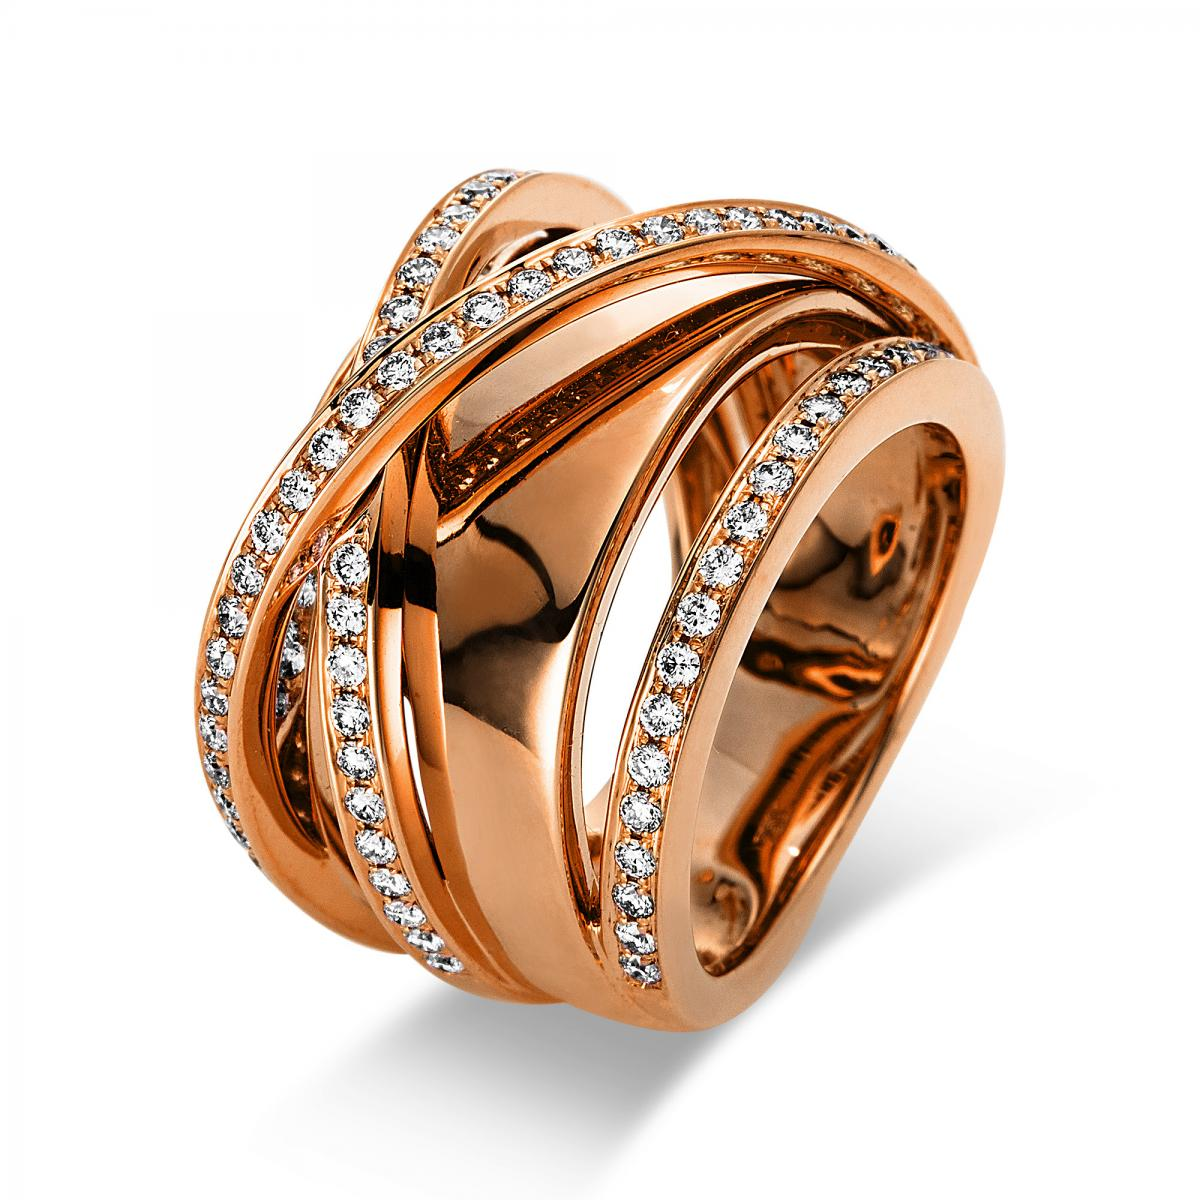 Ring 18 ct rosé gold with 87 brilliants ca. 0,91 ct, size 53